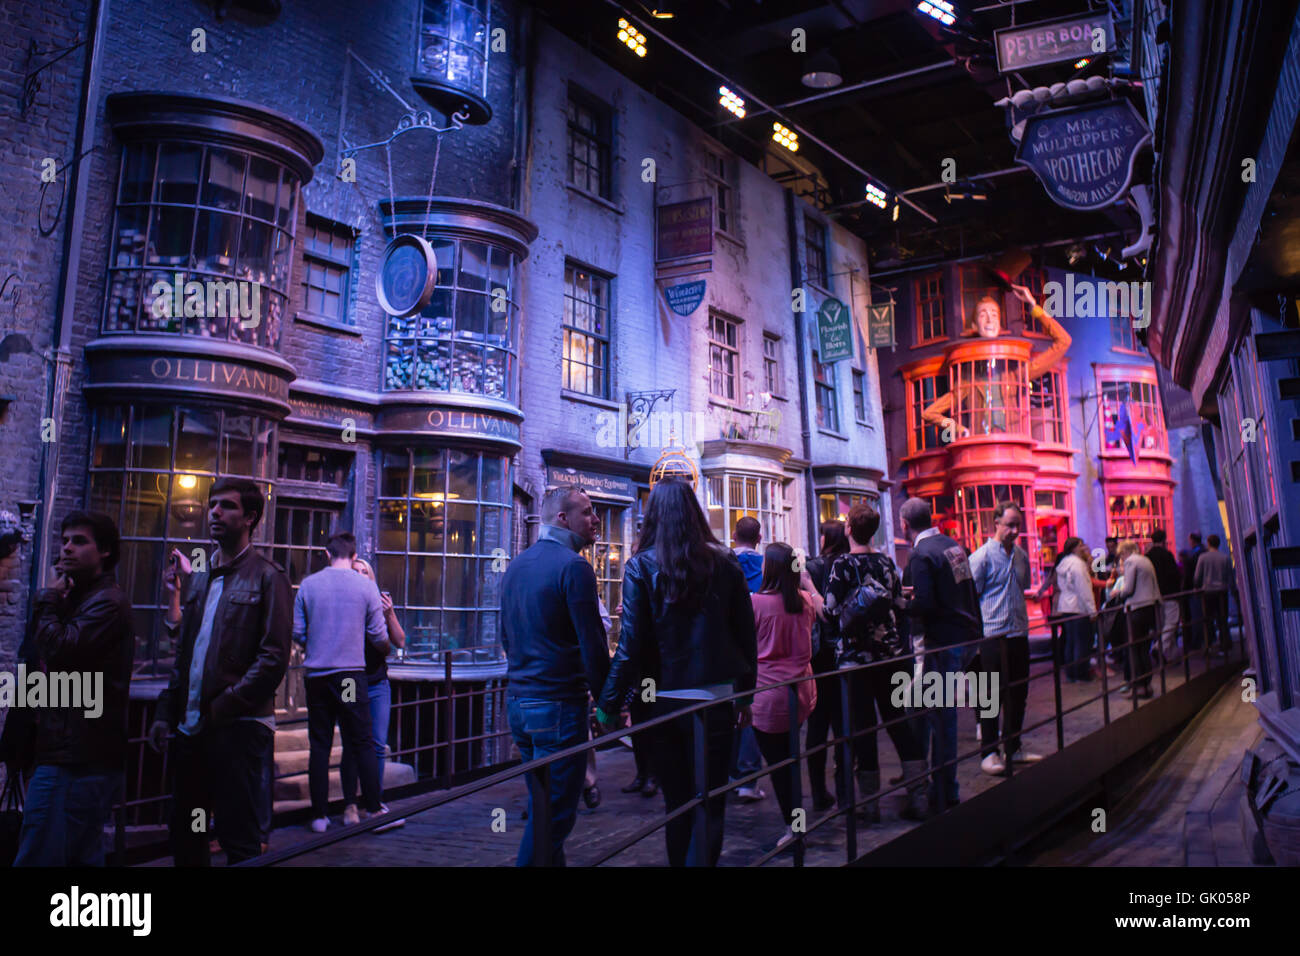 Diagon Alley with visitors in Harry Potter World Warner Bros Studio Tour Leavesden Watford, UK Stock Photo